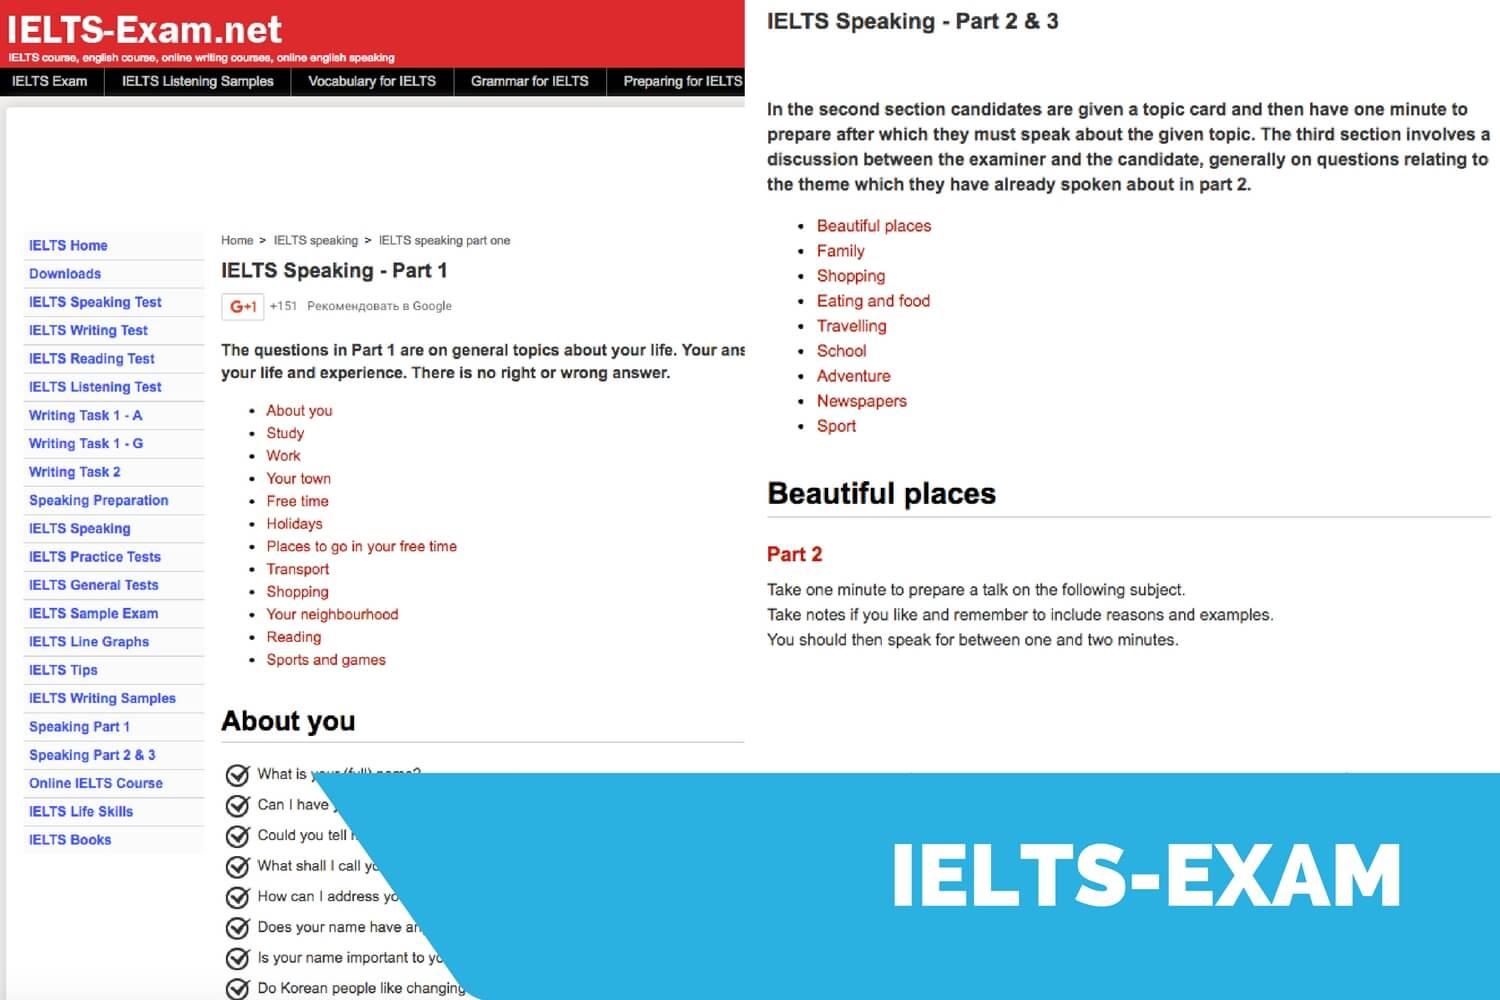 ielts speaking test sample questions and answers pdf